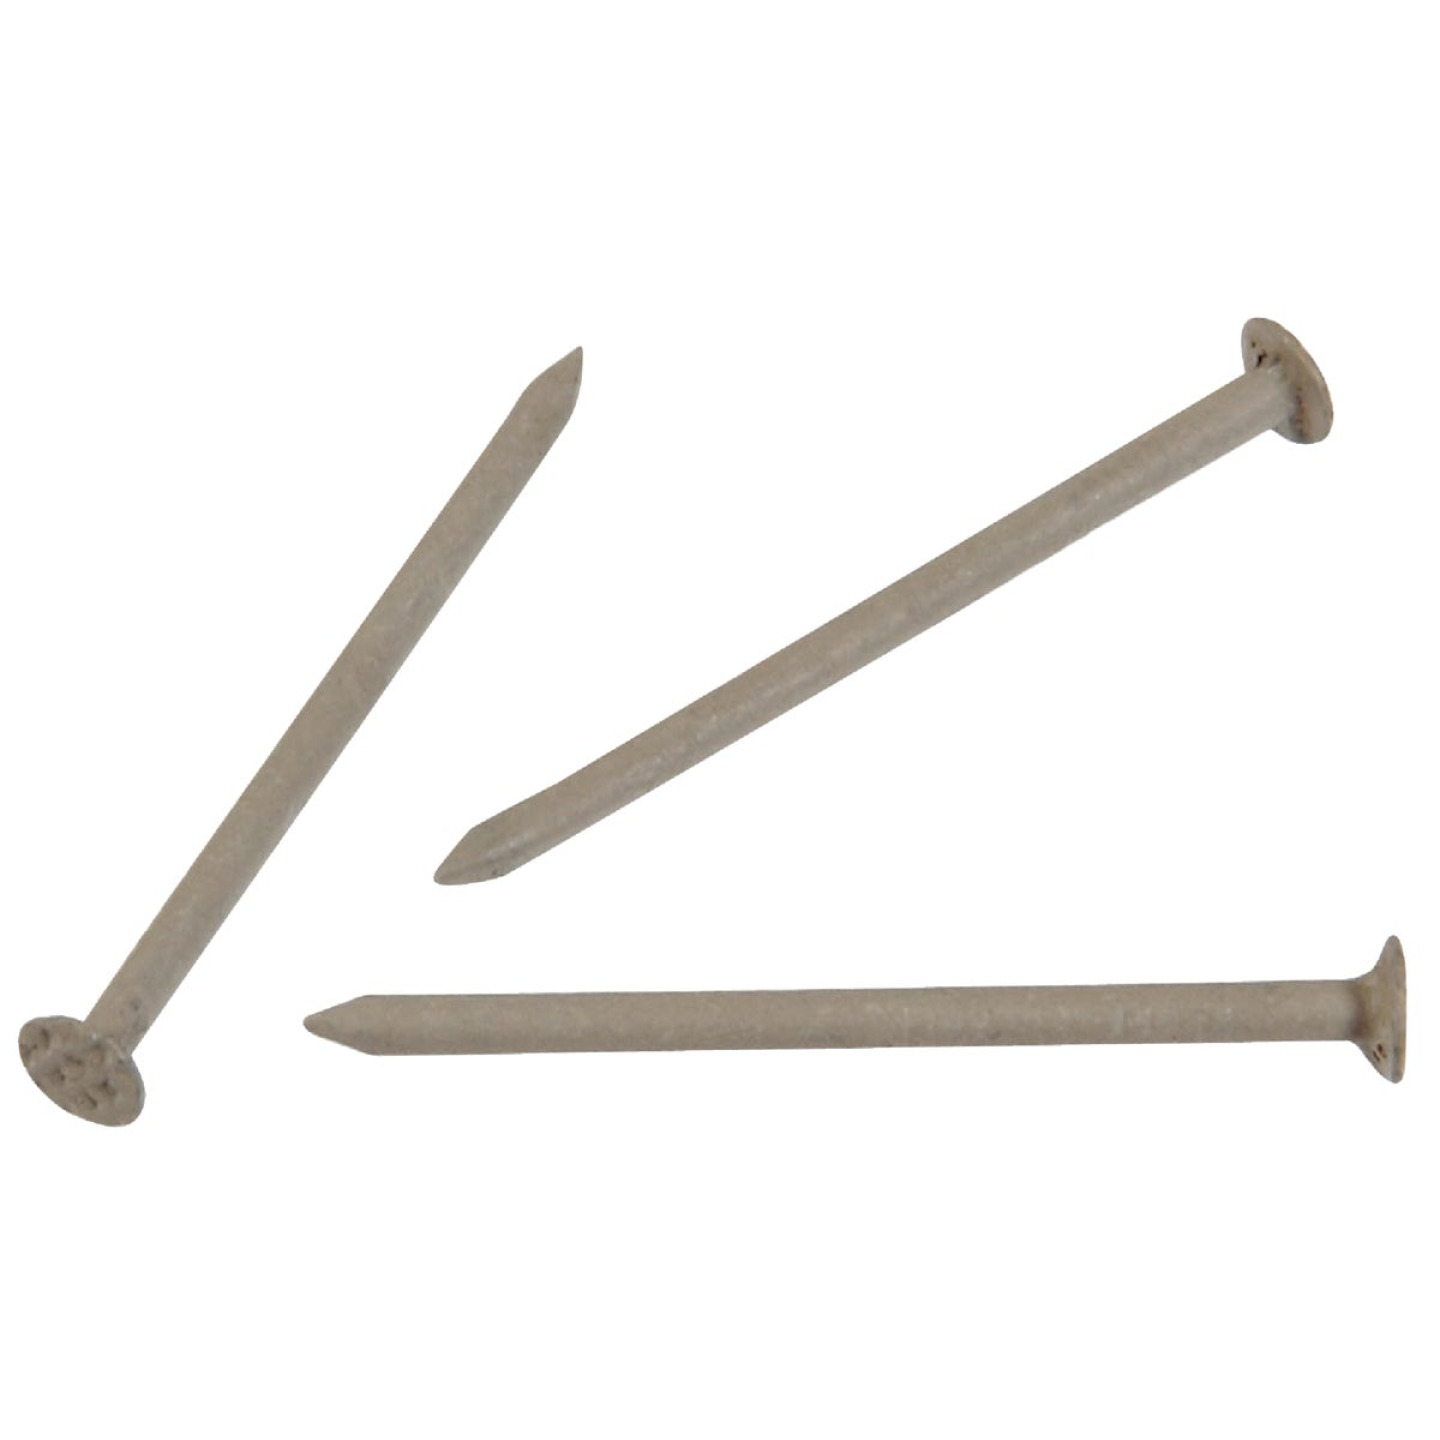 Hillman Anchor Wire 1-1/4 In. 15 ga Clay Stainless Steel Trim Nails (5 Ct., 6 Oz.)  Image 1